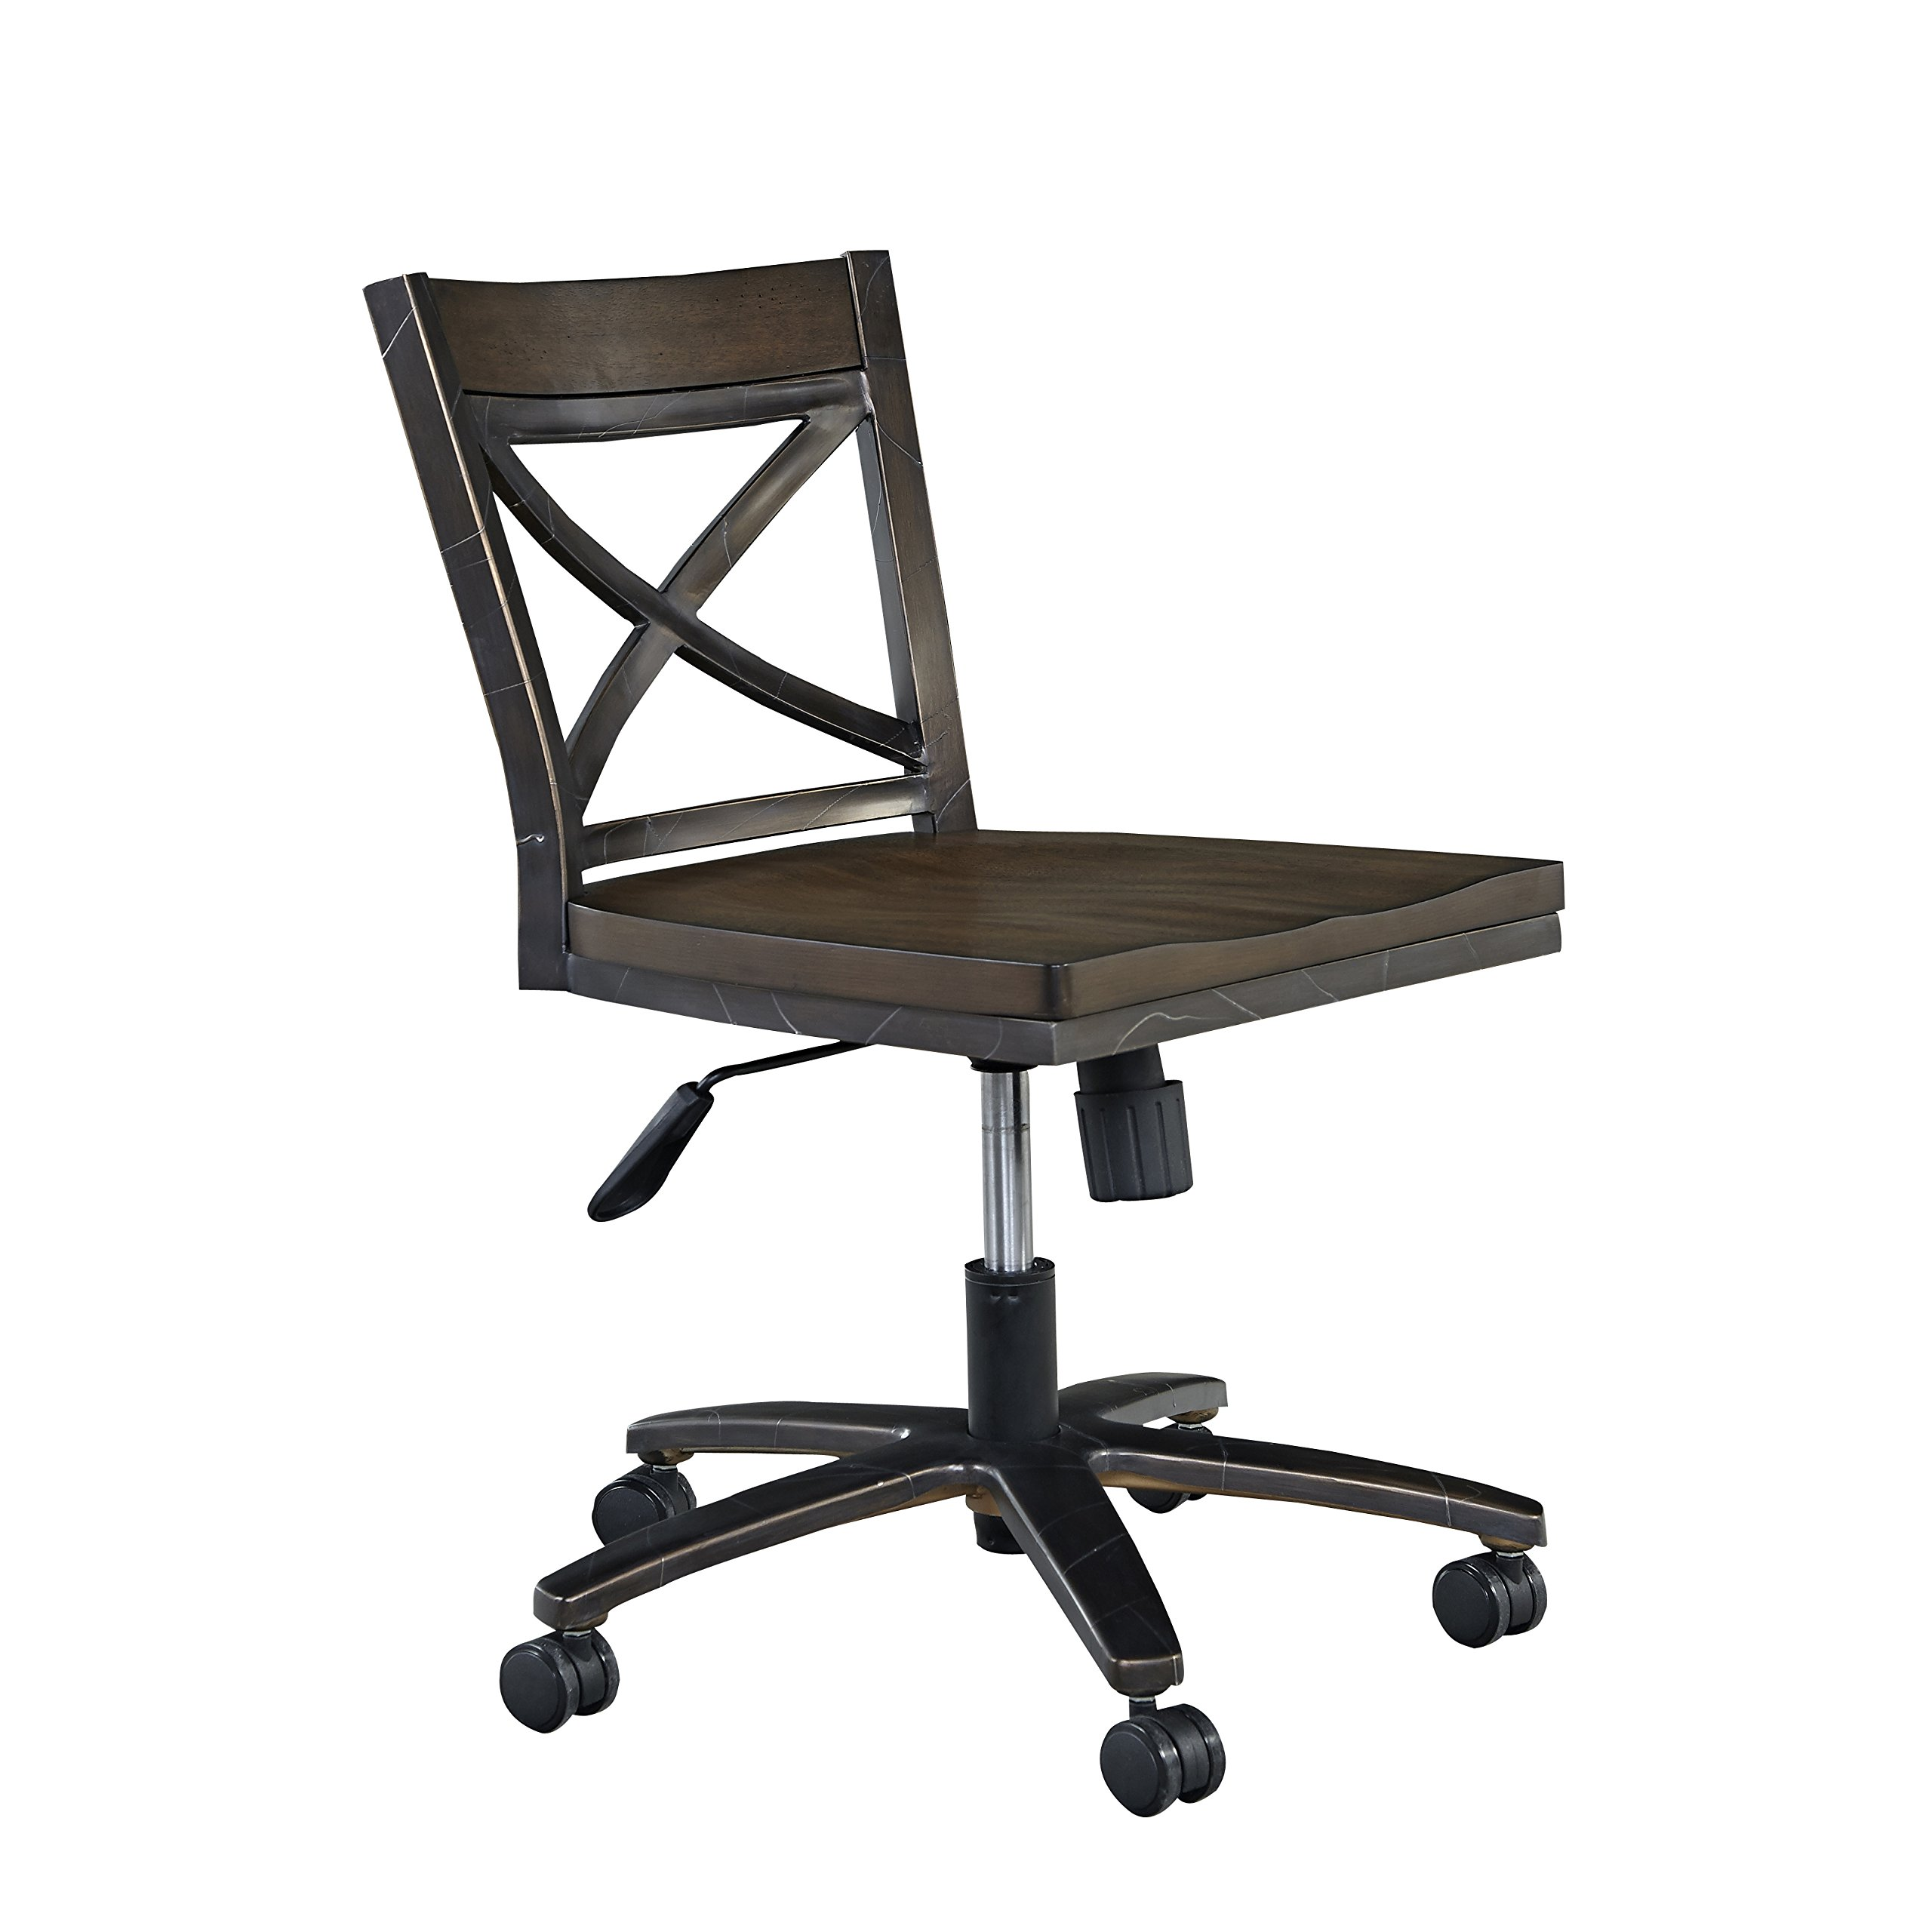 Home Styles 5079-53 Swivel Desk Chair by Home Styles